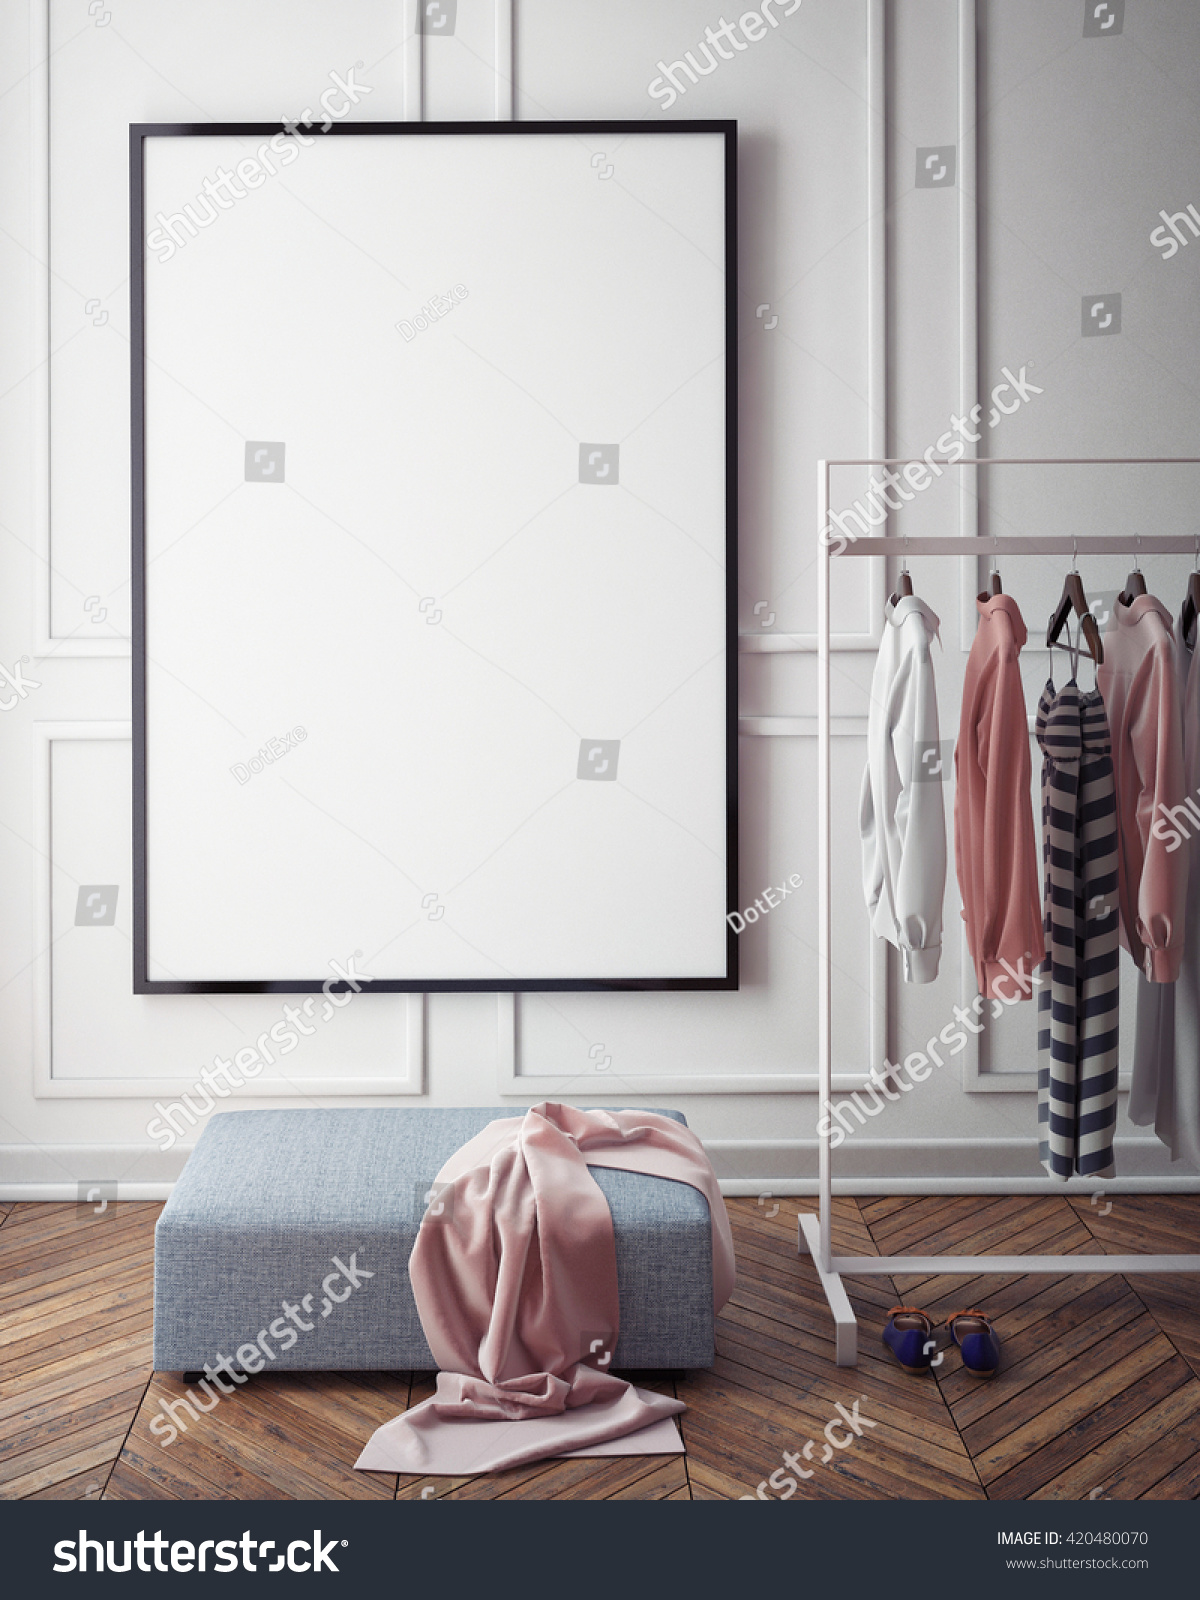 Awesome Interieur Pastel Vintage Pictures - Payn.us - payn.us